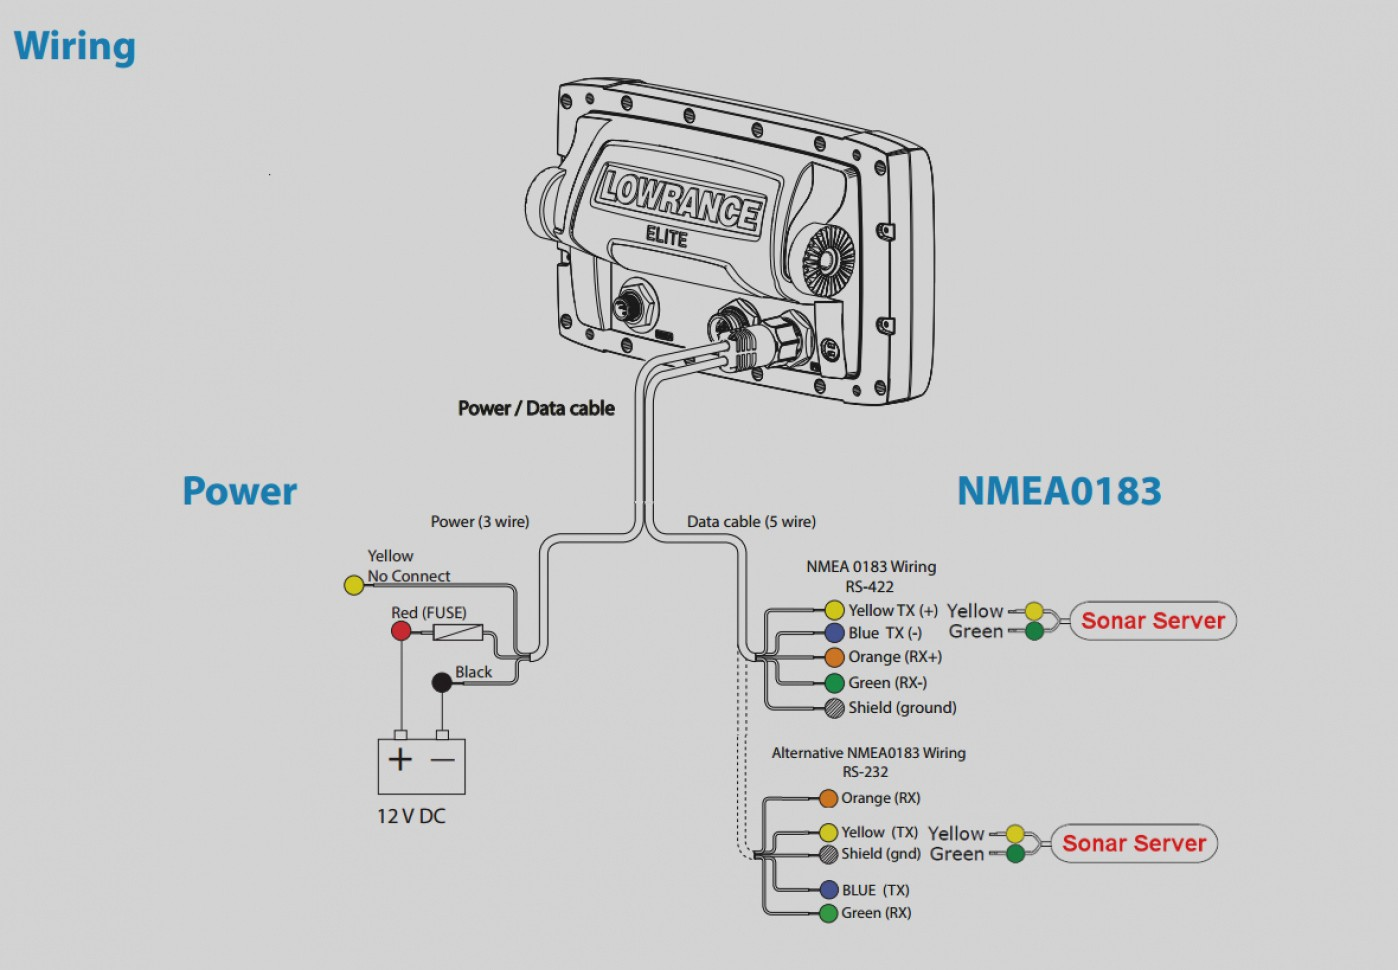 Wiring Diagram Garmin Echomap Trusted Koolertron 50s Online Schematic U2022